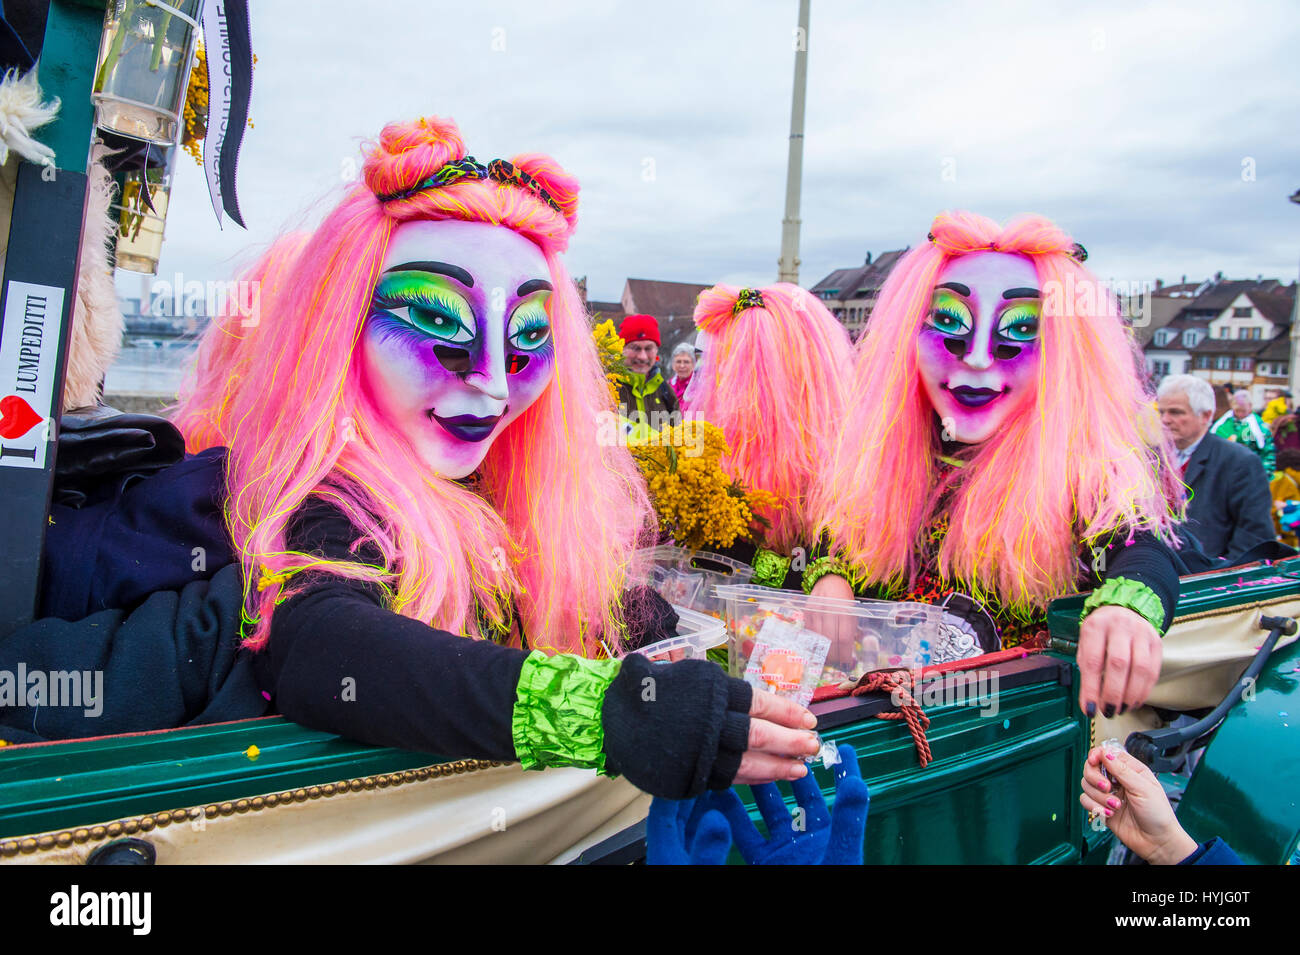 BASEL , SWITZERLAND - MARCH 08 : Participants in the Basel Carnival in Basel , Switzerland on March 08 2017. The - Stock Image